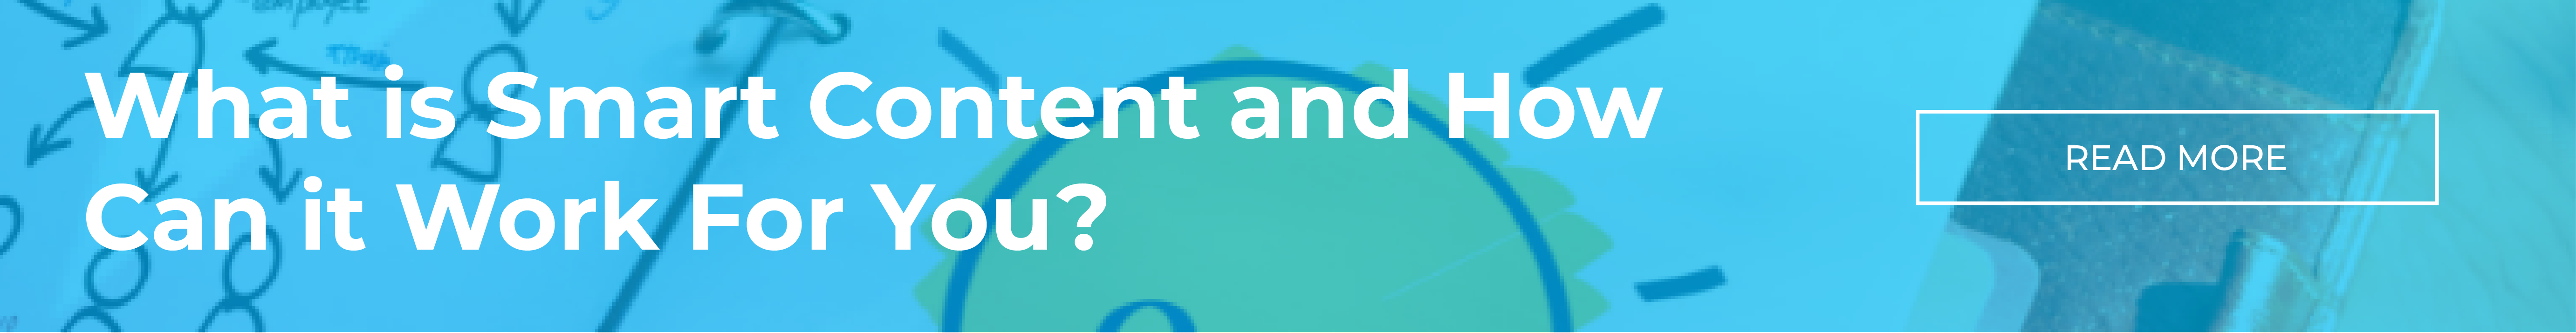 What is smart content and how can it work for you banner